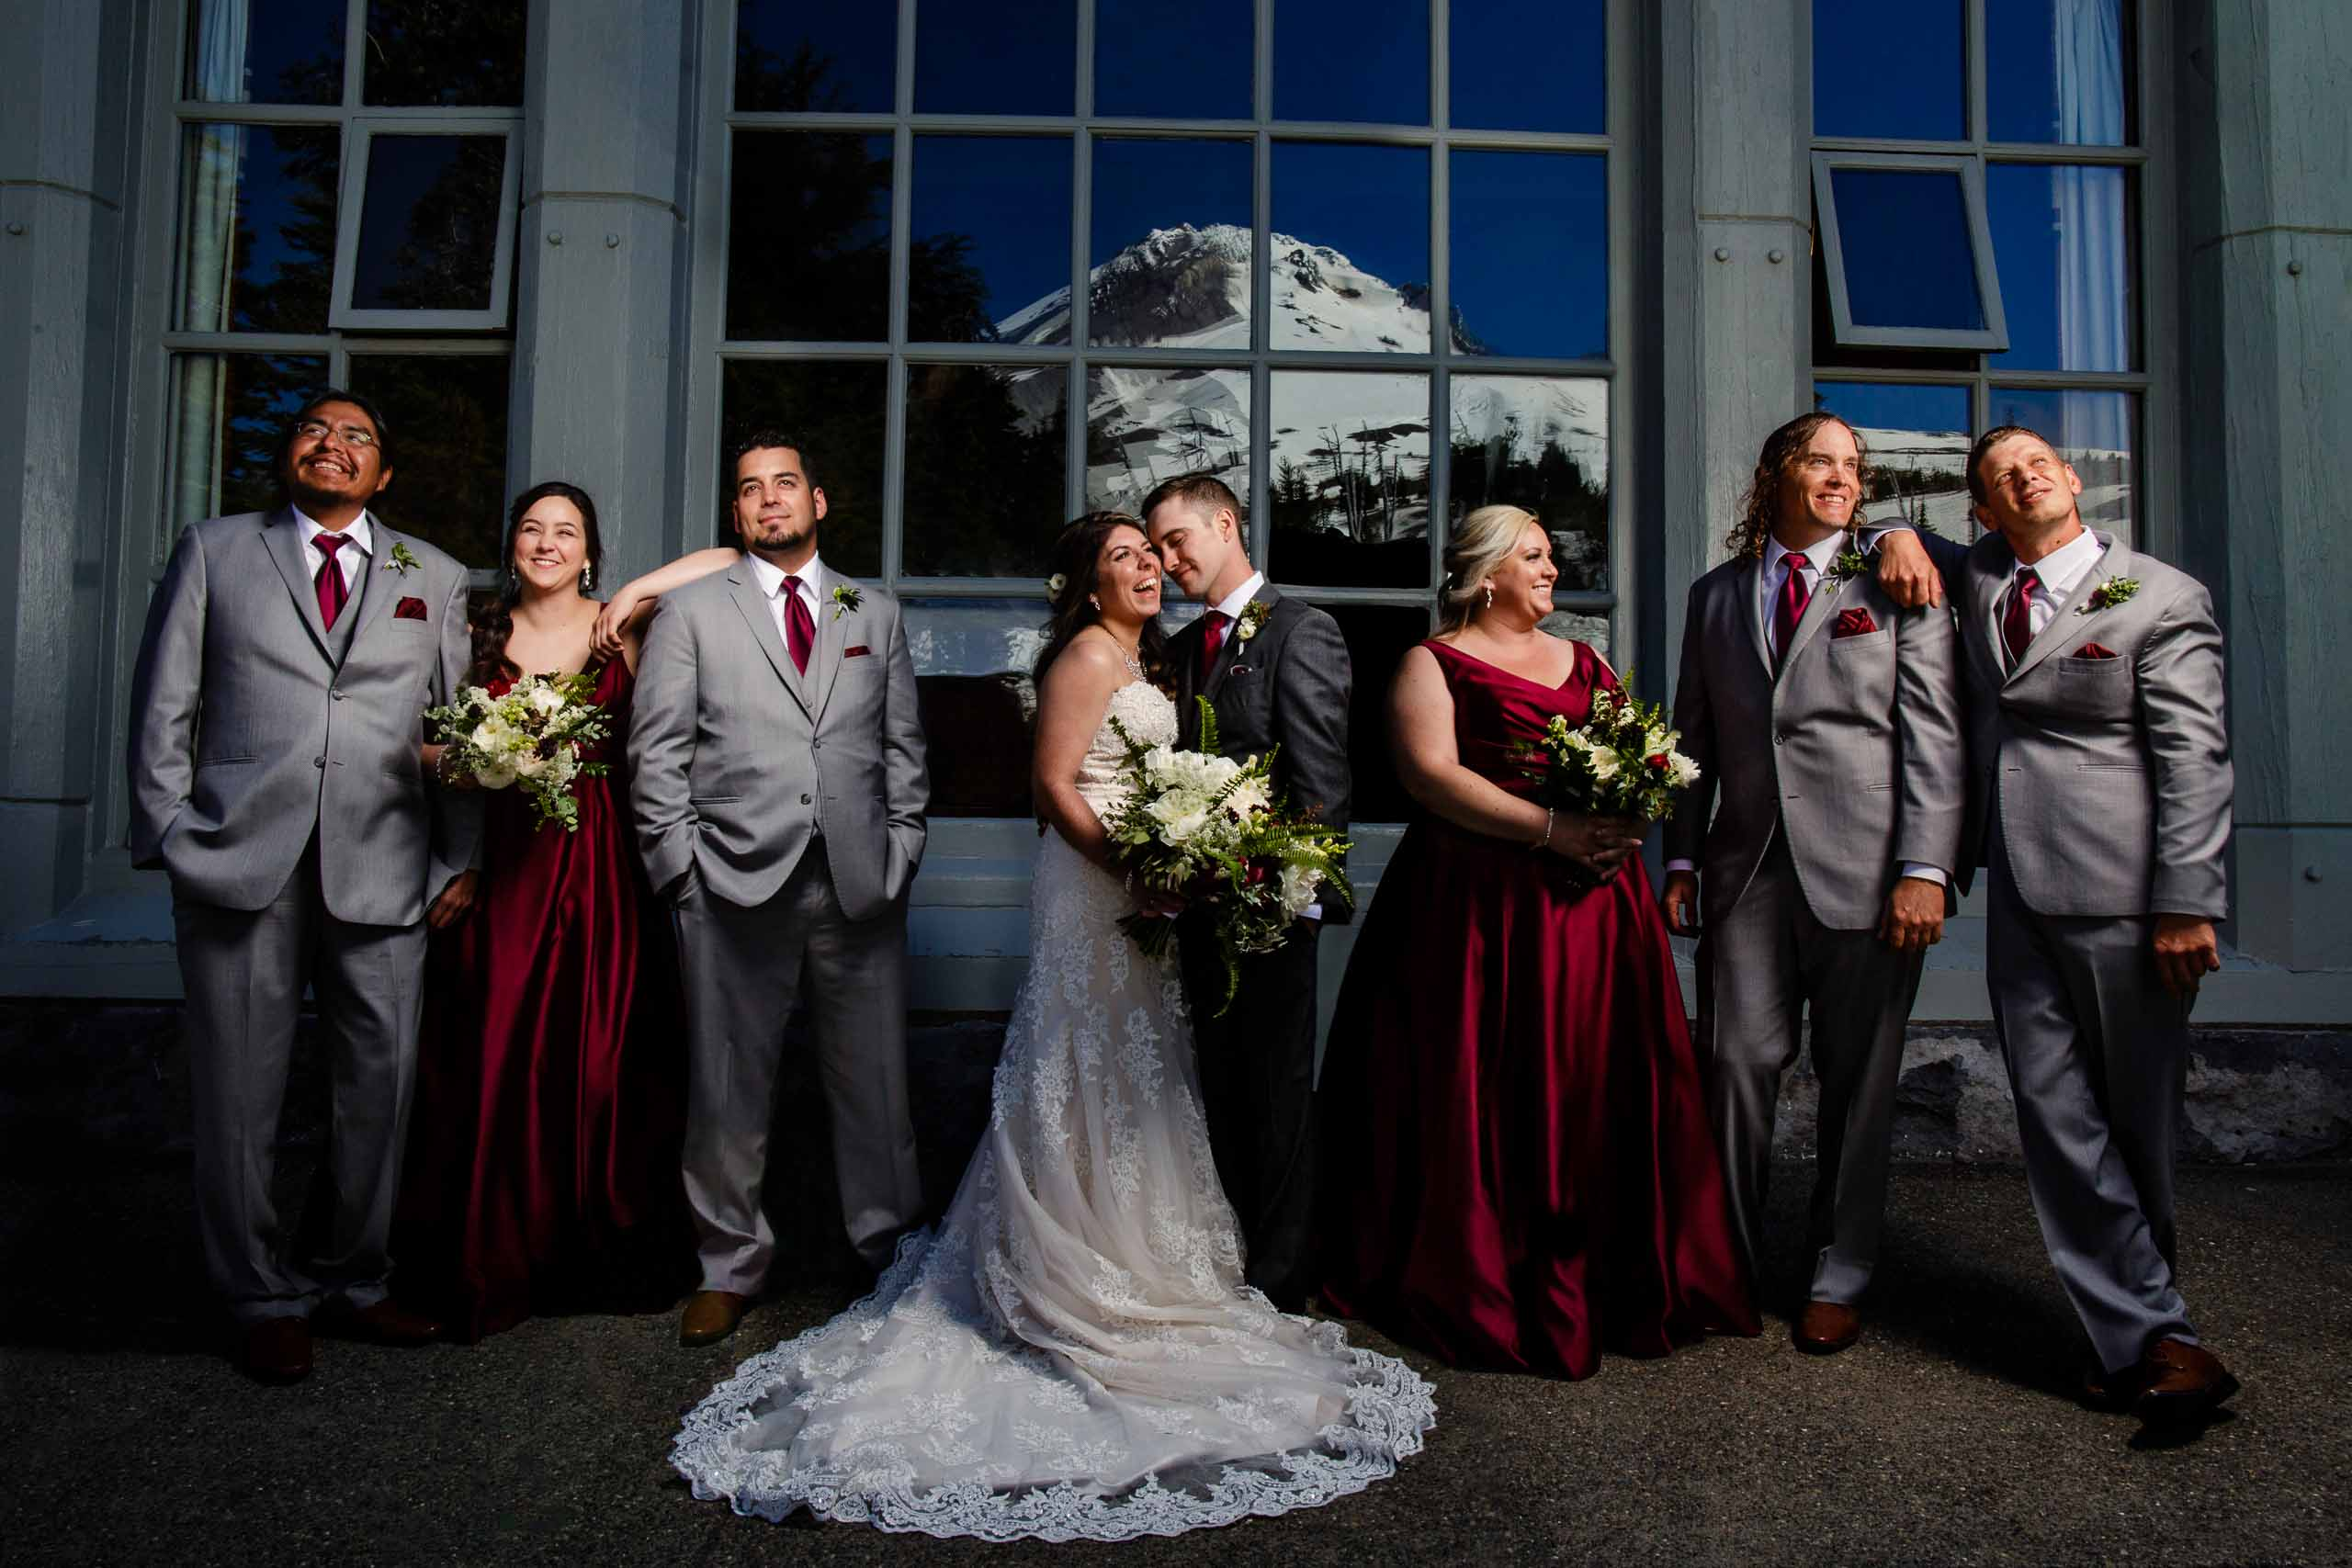 Excellent group portrait brilliantly lit at a Timberline Lodge Wedding atop Mt Hood